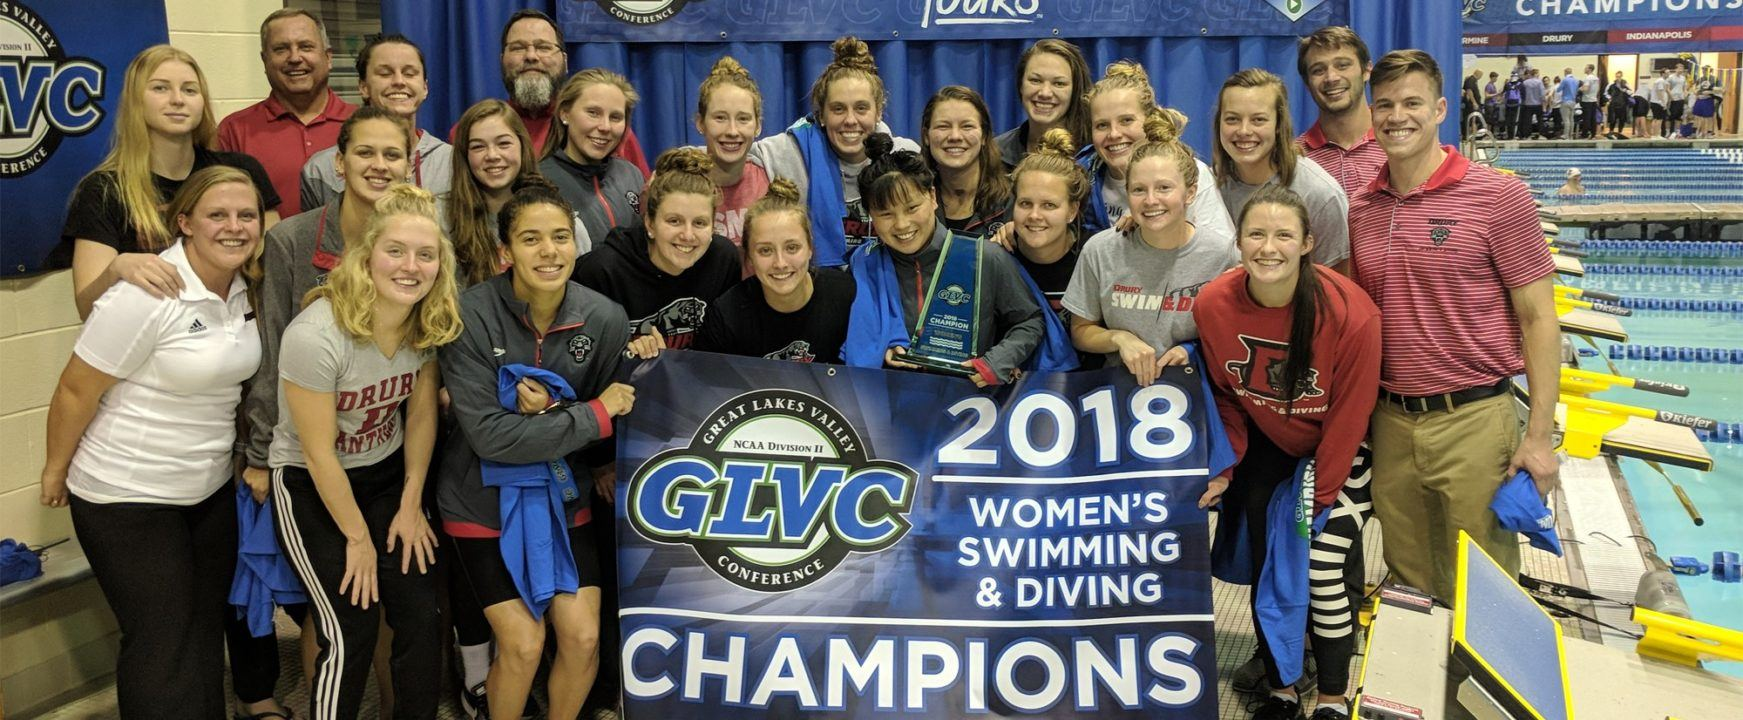 GLVC Day 4 Recap: Drury Women Win Again, UIndy Men Unseat Drury